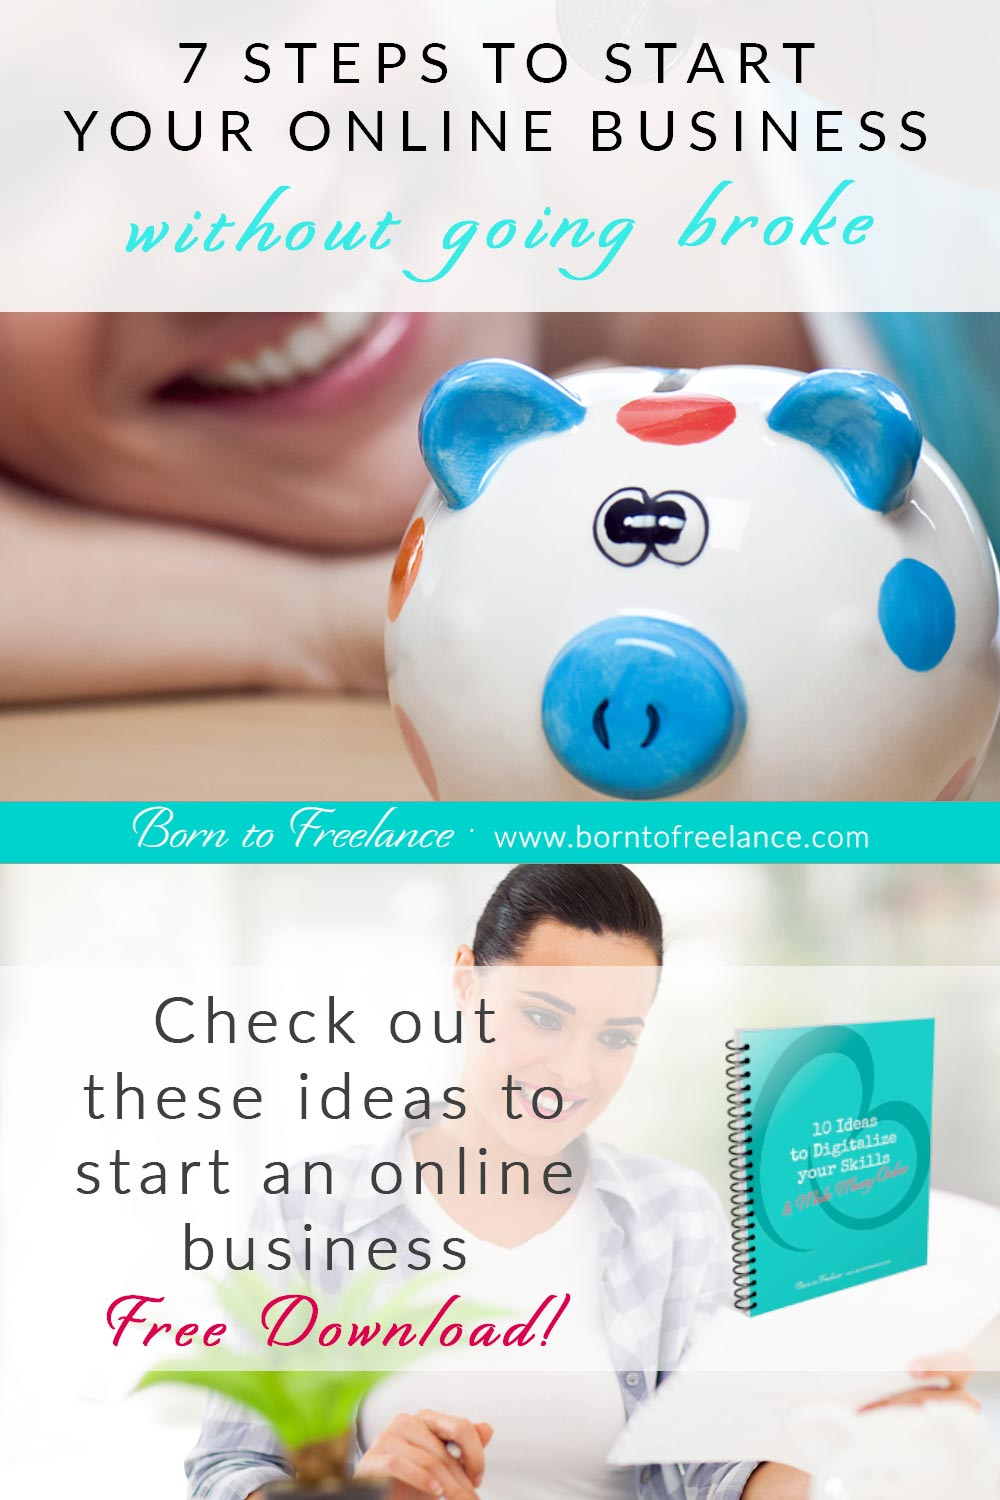 Start your online business without money